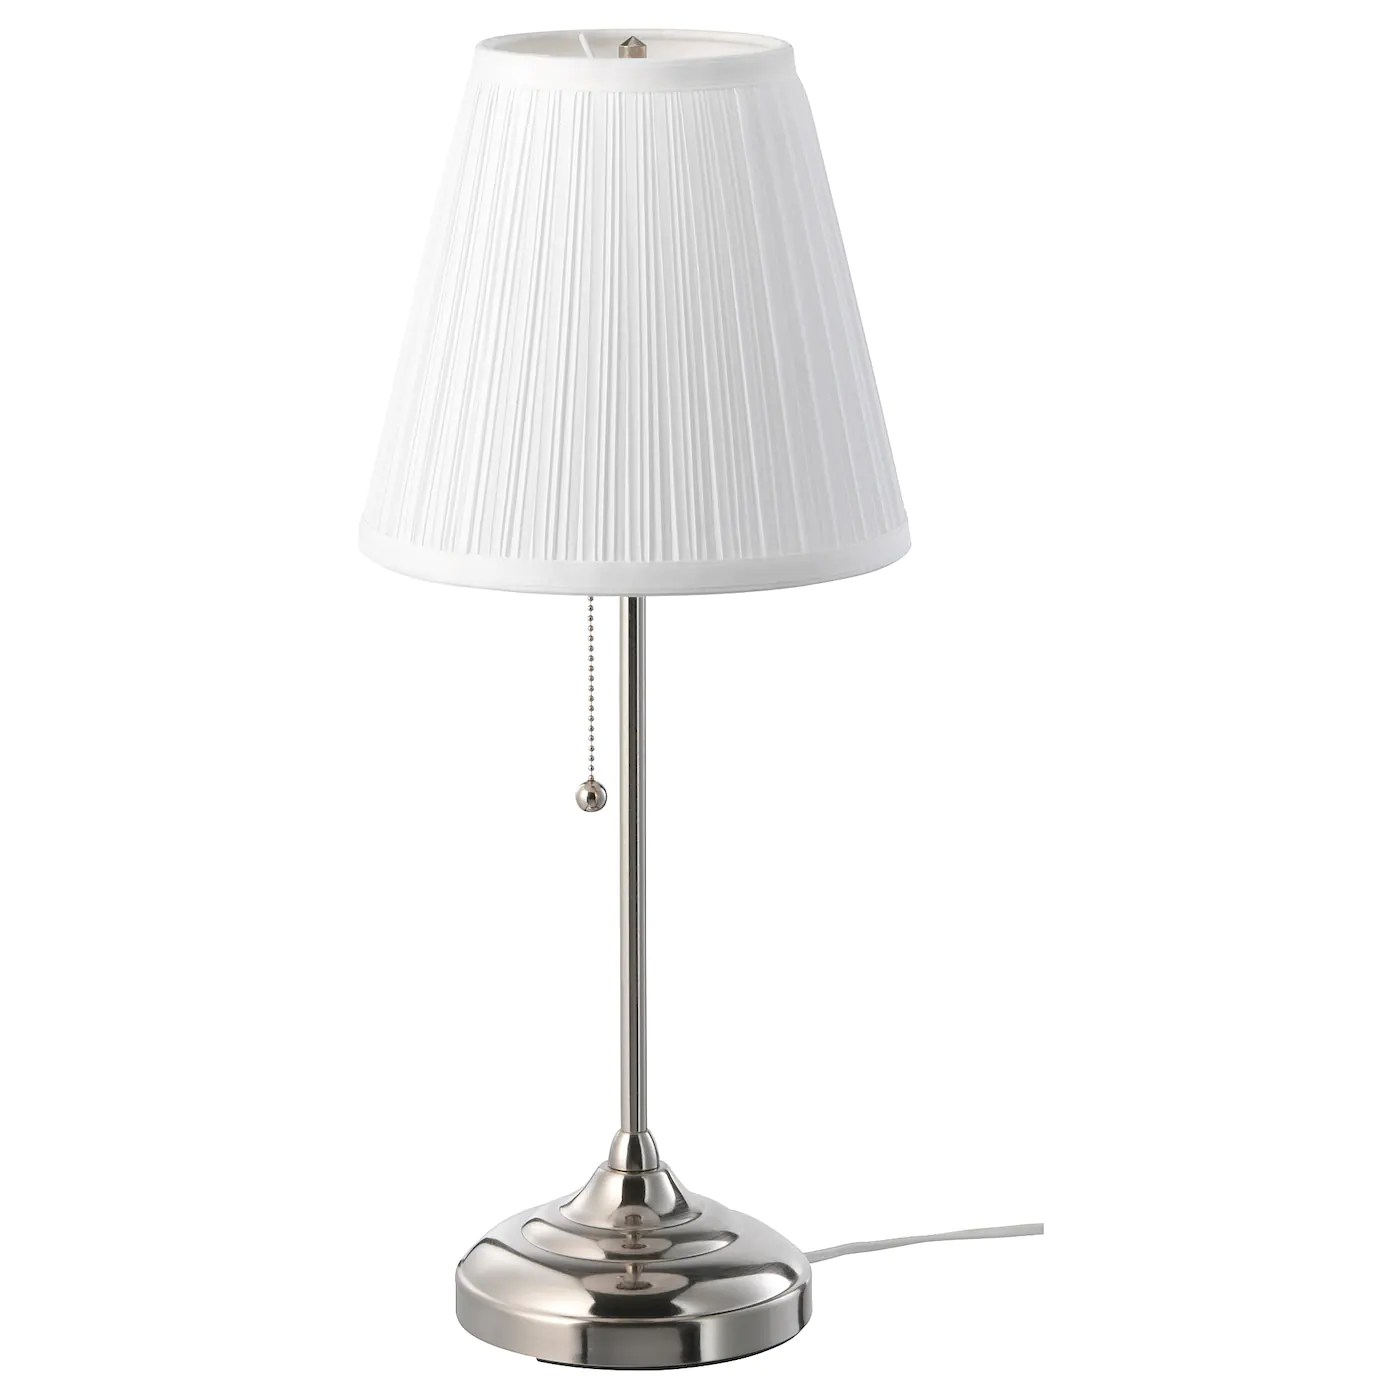 Årstid table lamp with